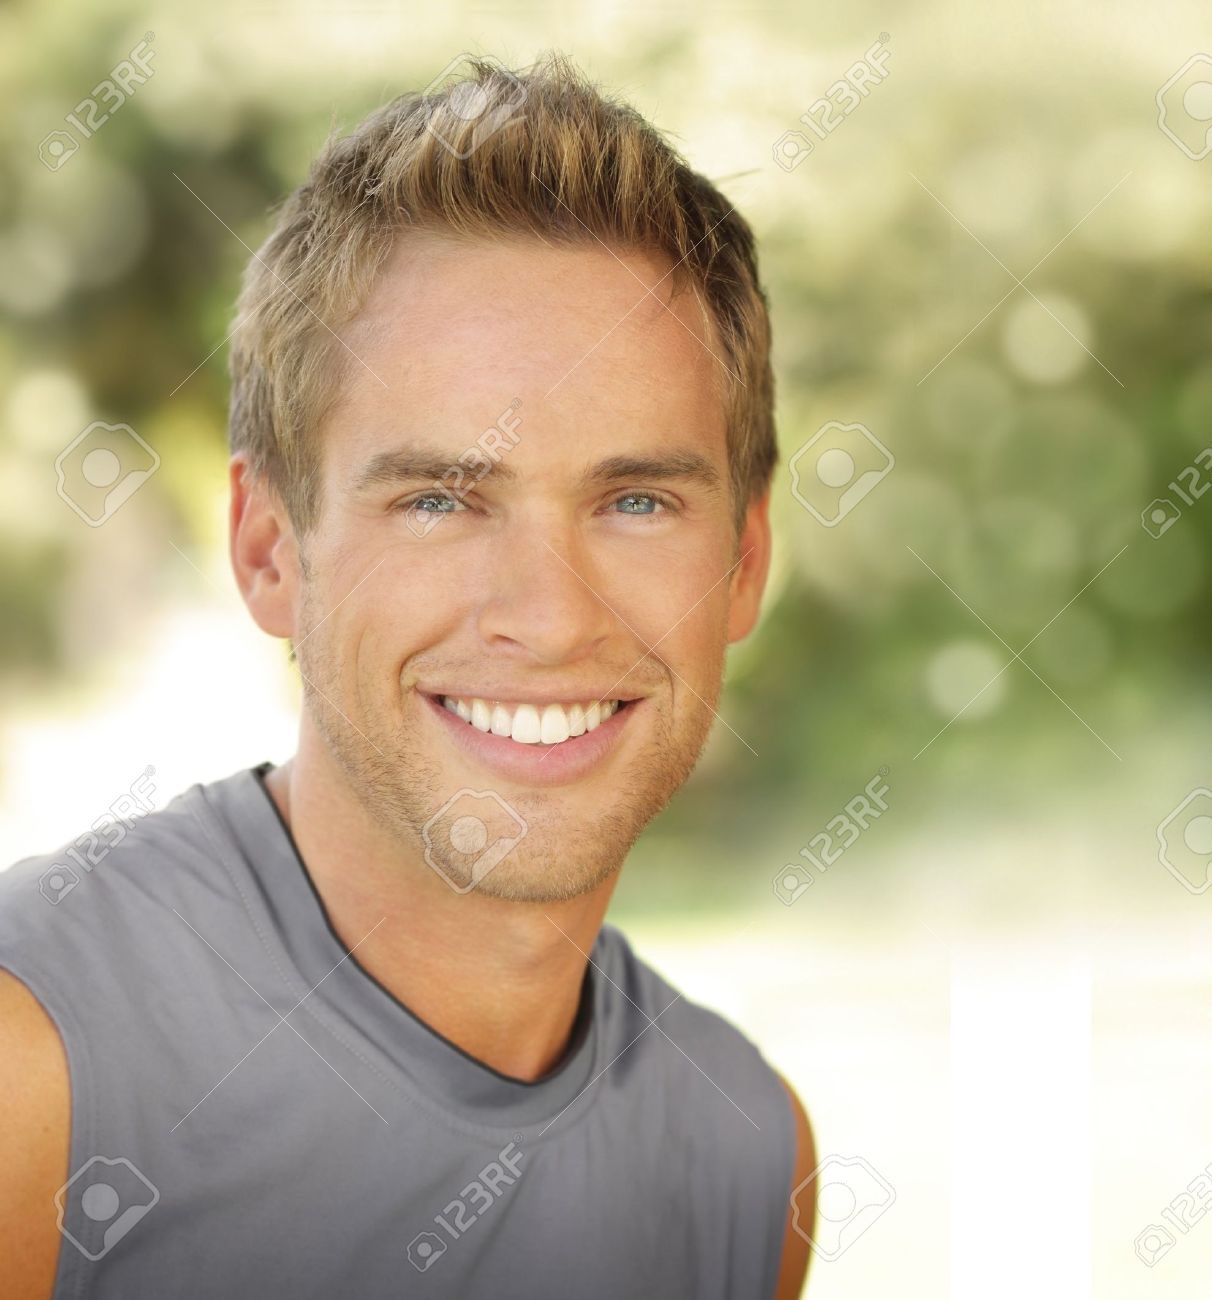 Satisfied smiling young male outdoors with copy space Stock Photo - 16826077